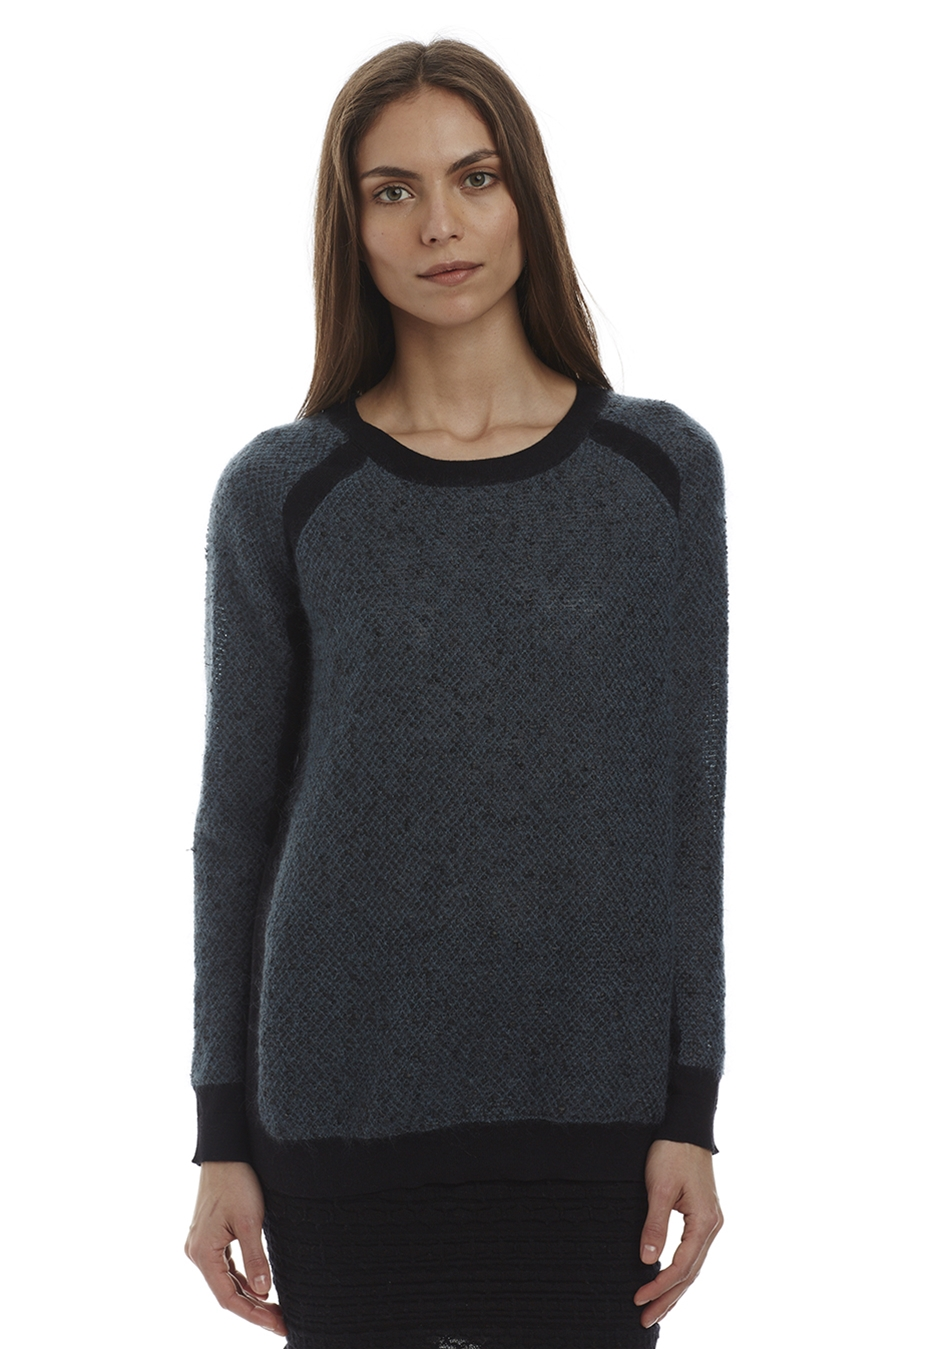 Melange Crew Mock Neck . Was $358, now $107.40.